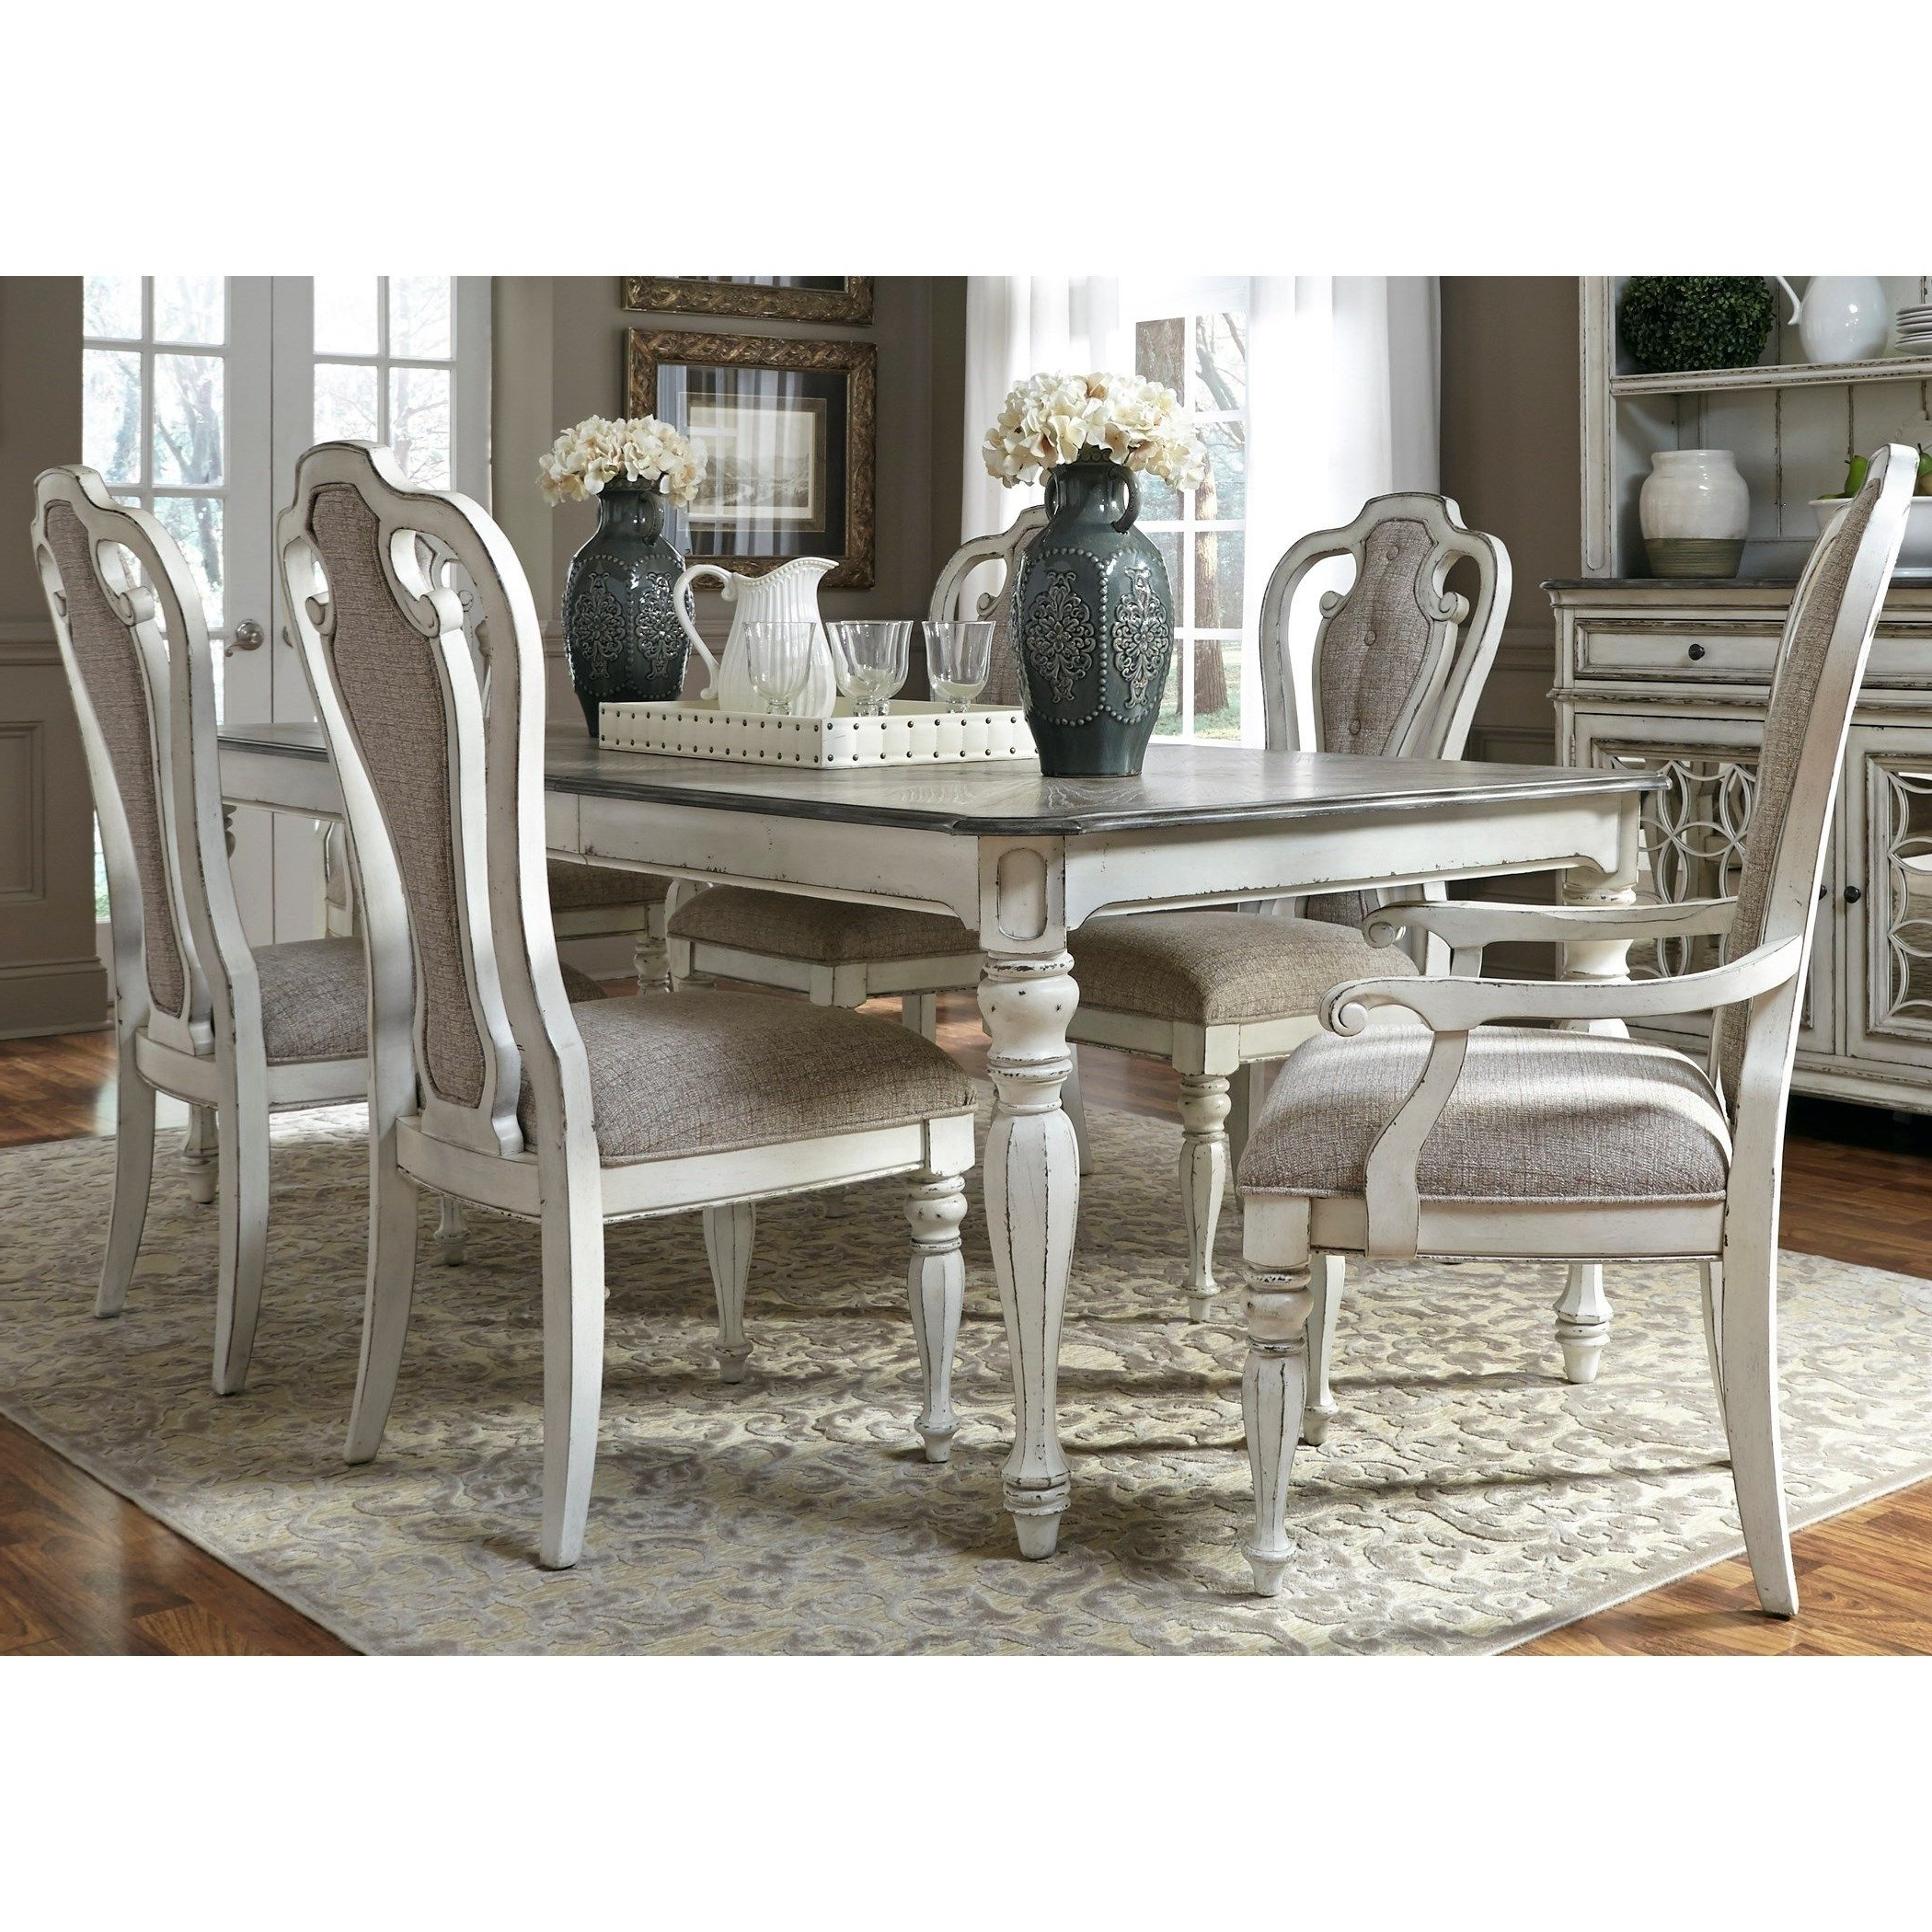 Crawford 7 Piece Rectangle Dining Sets In Recent Magnolia Manor Dining 7 Piece Rectangular Table Set With Leaf (View 13 of 25)